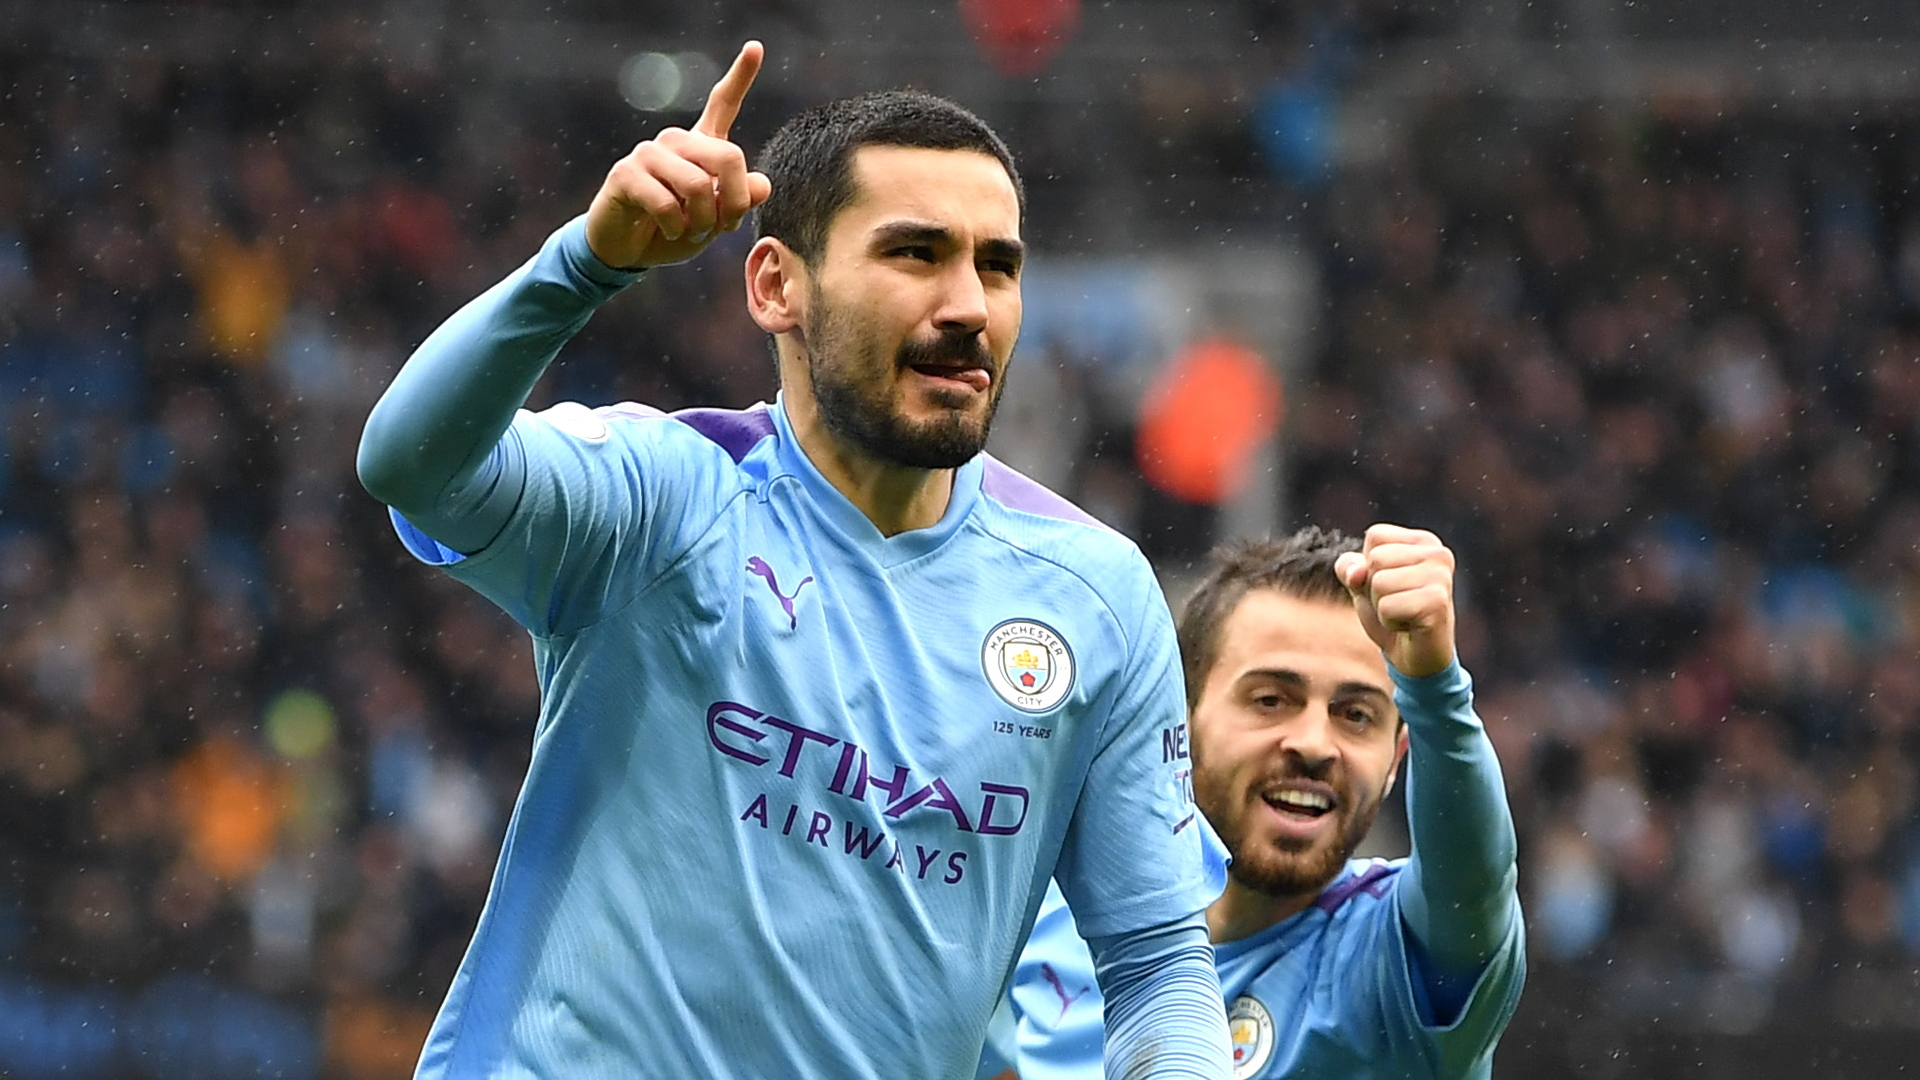 'He is an exceptional player' - Guardiola hails 'intelligent' Gundogan as one of Europe's best